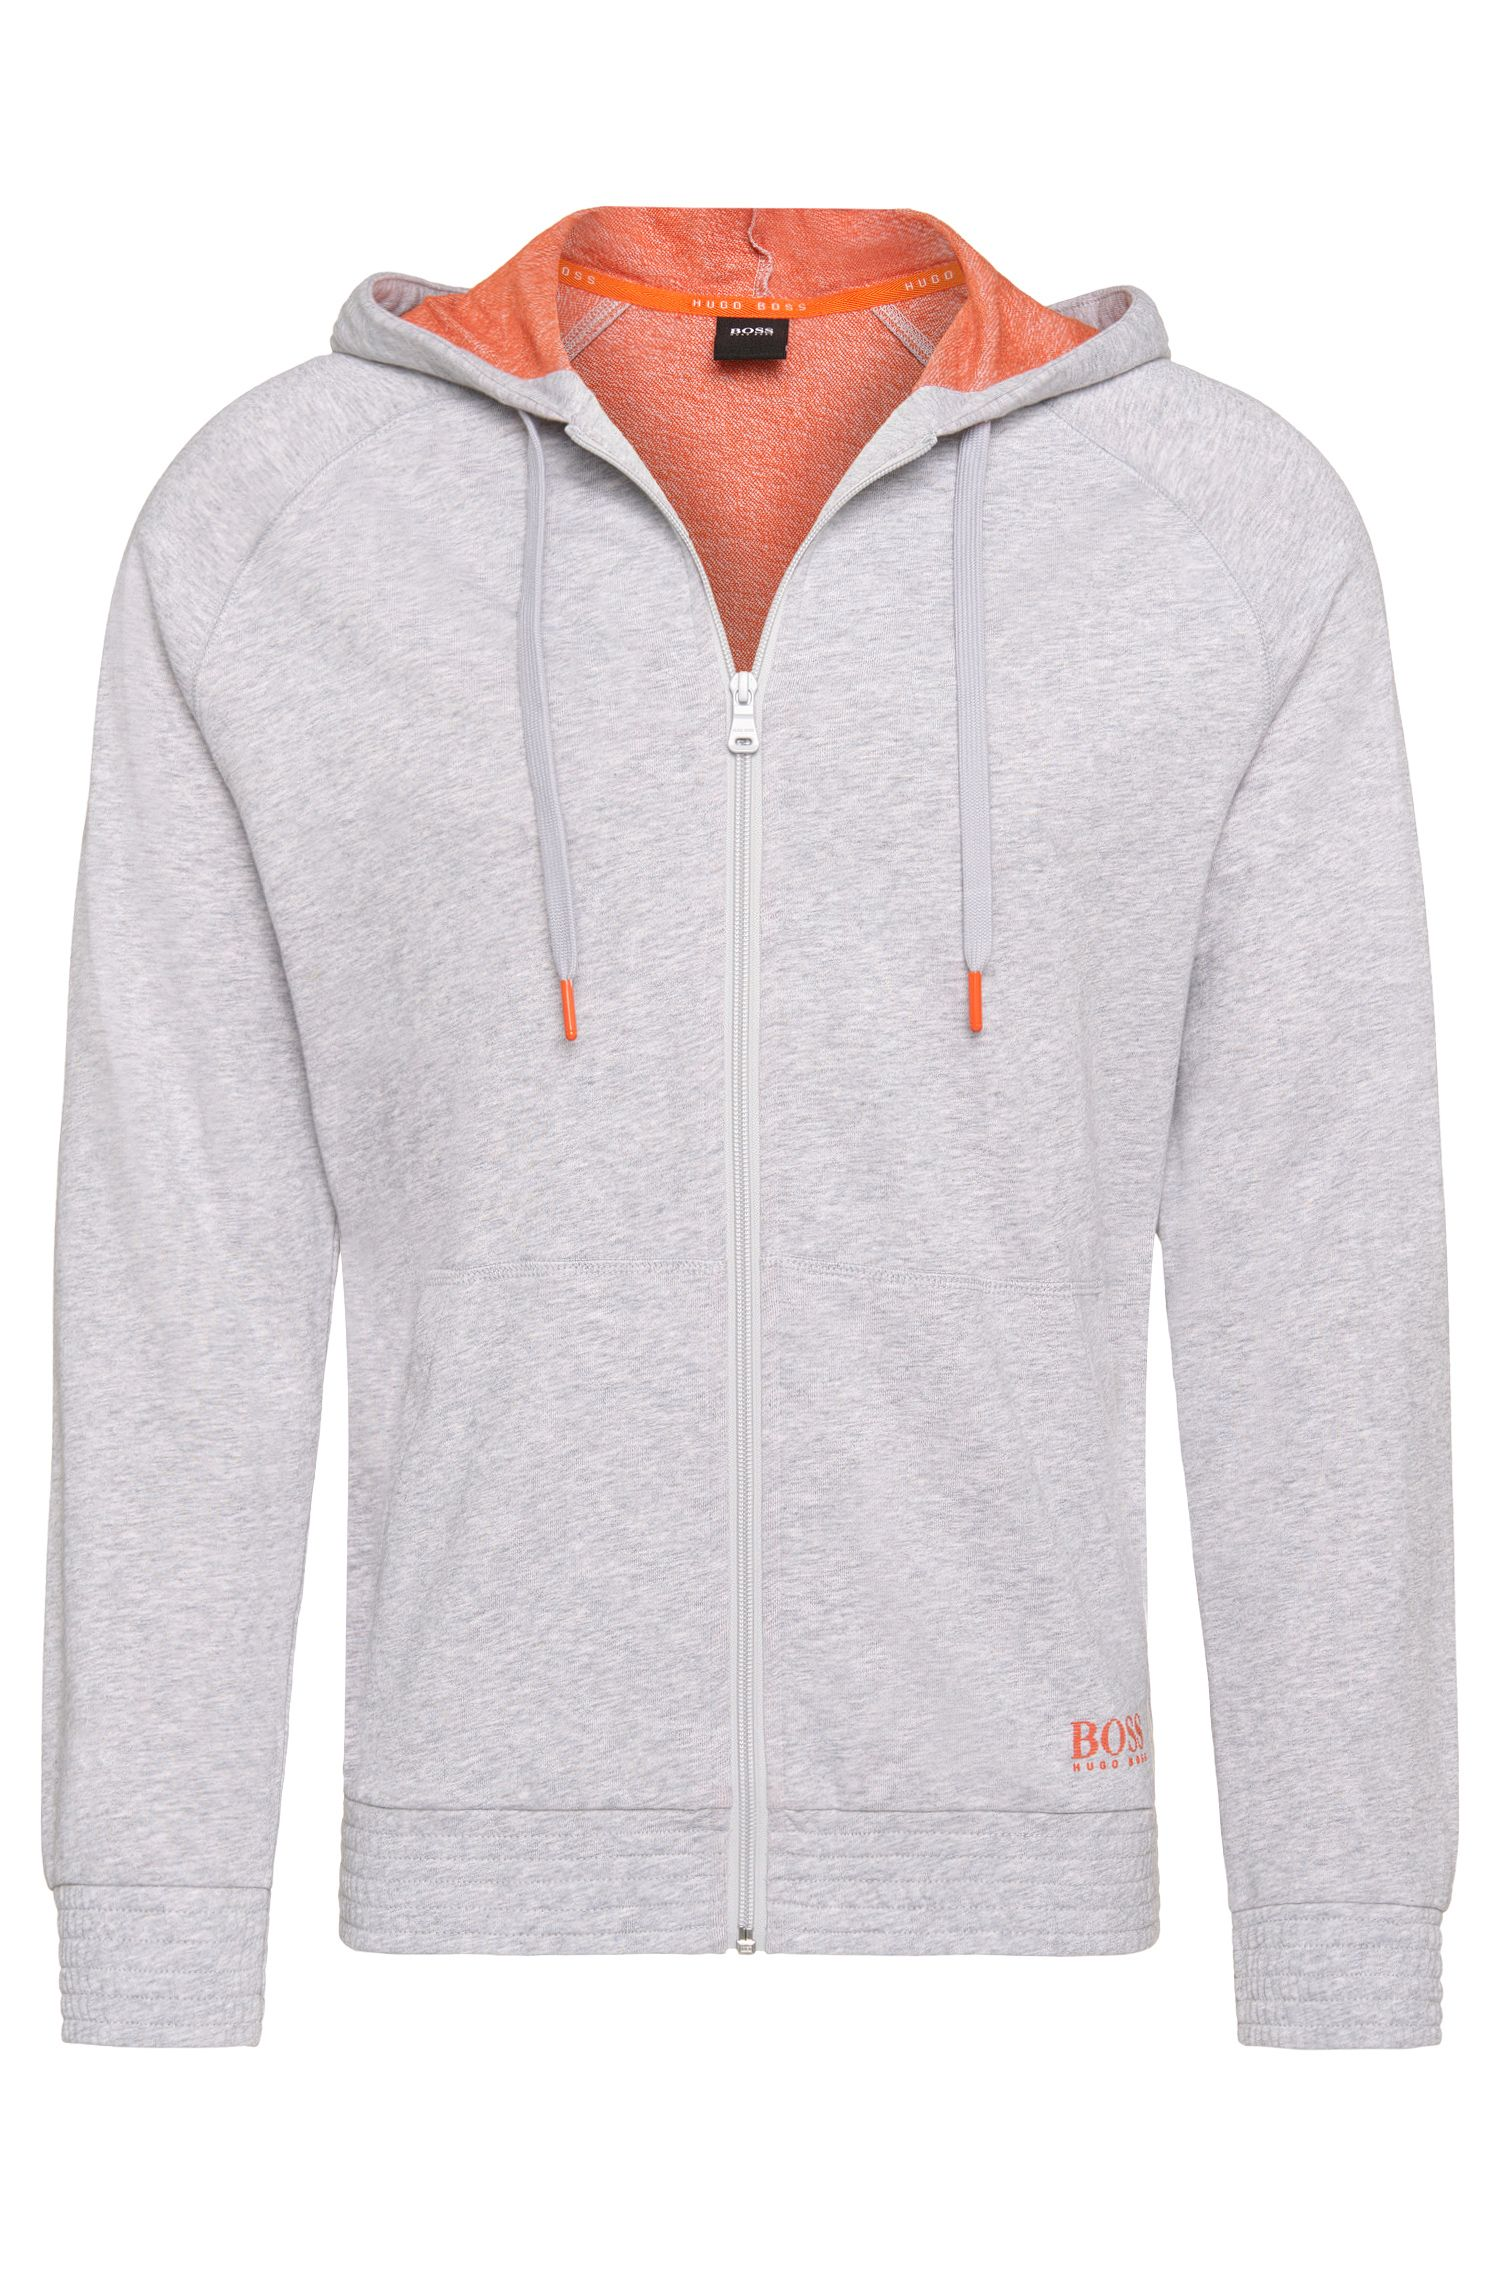 'Jacket Hooded' | Cotton Hooded Sweatshirt